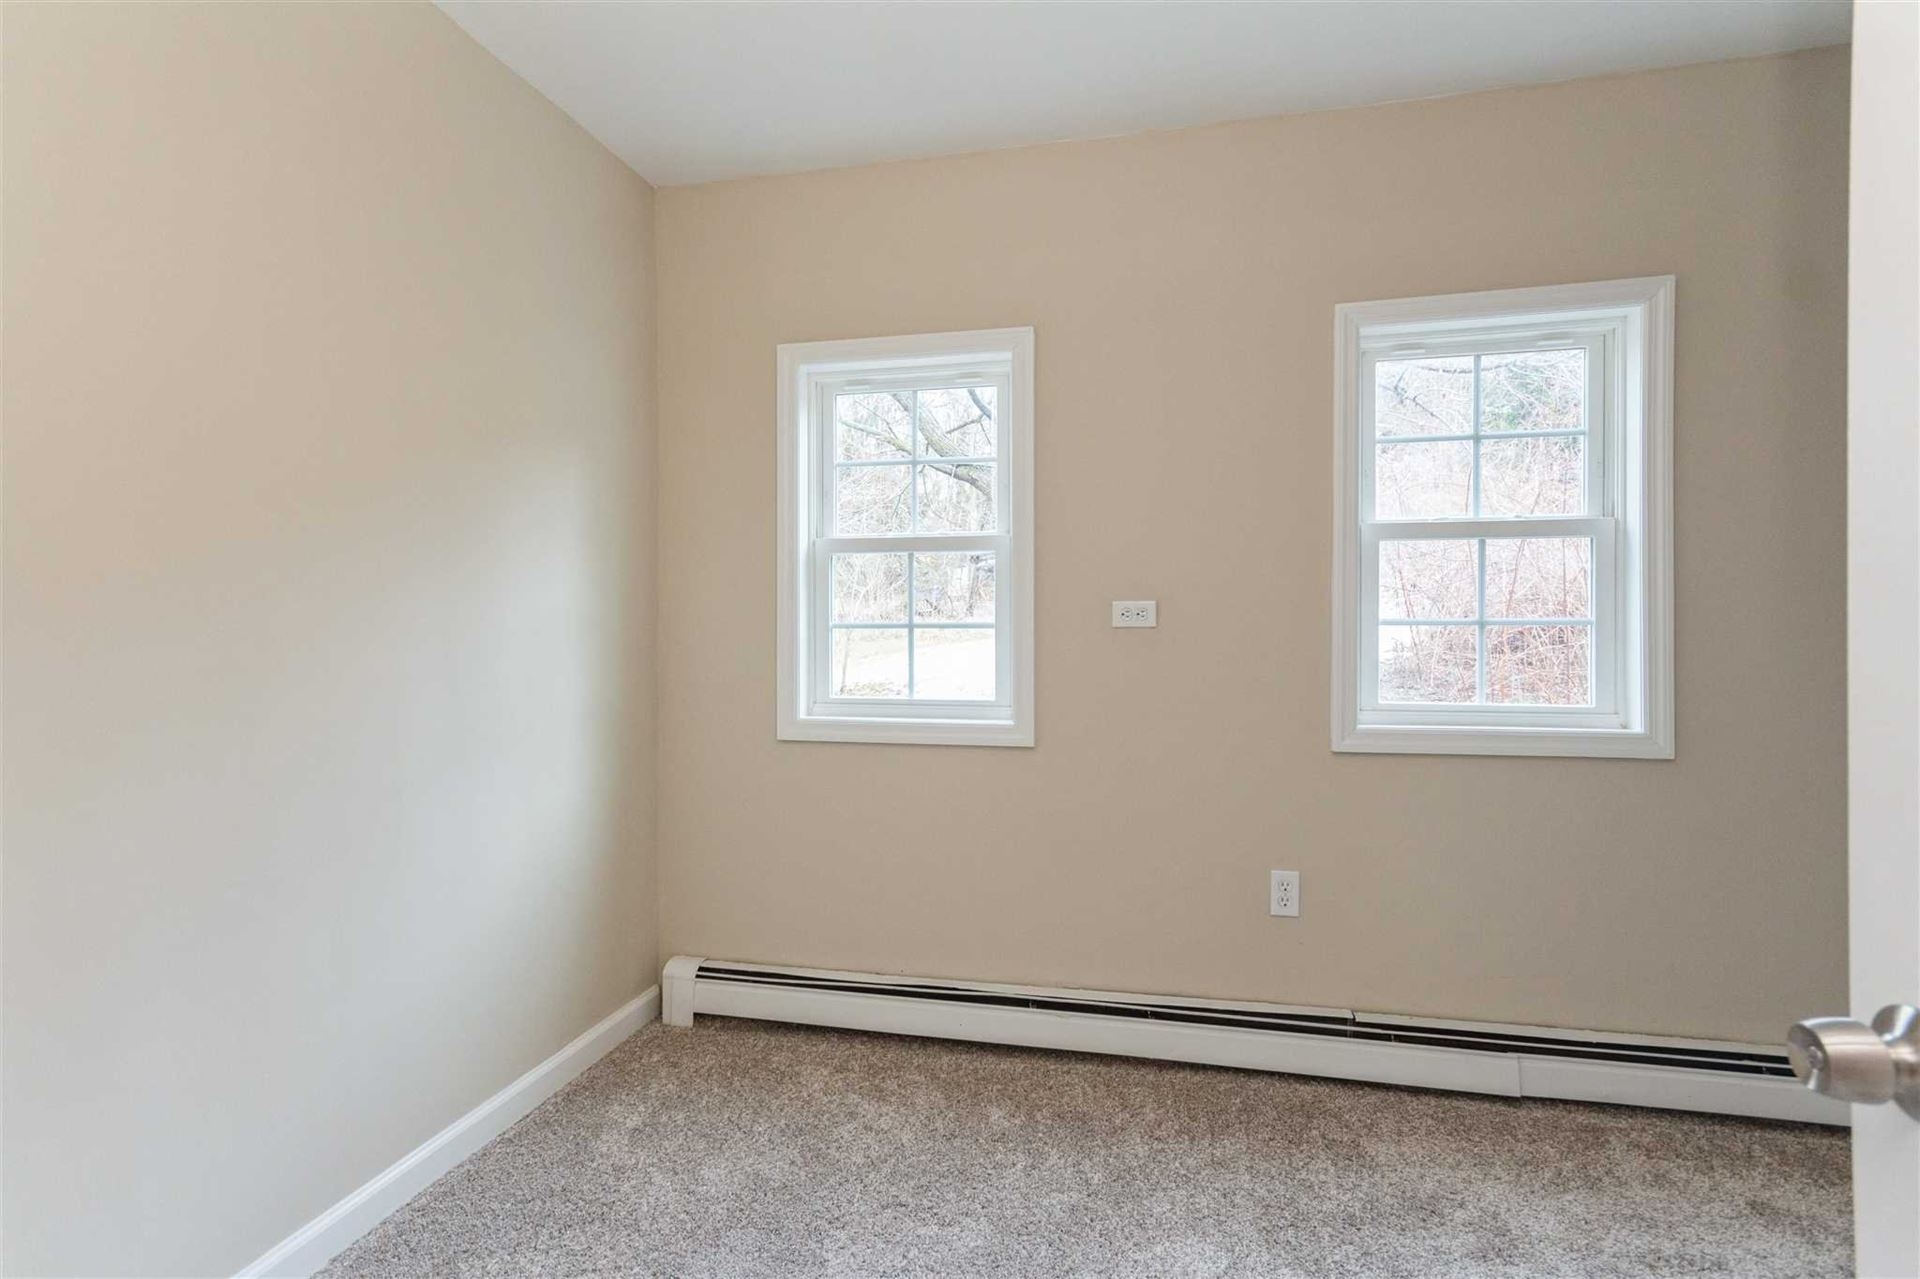 3 SKY TOP DR, Wappingers Falls, NY 12590 - #: 397503